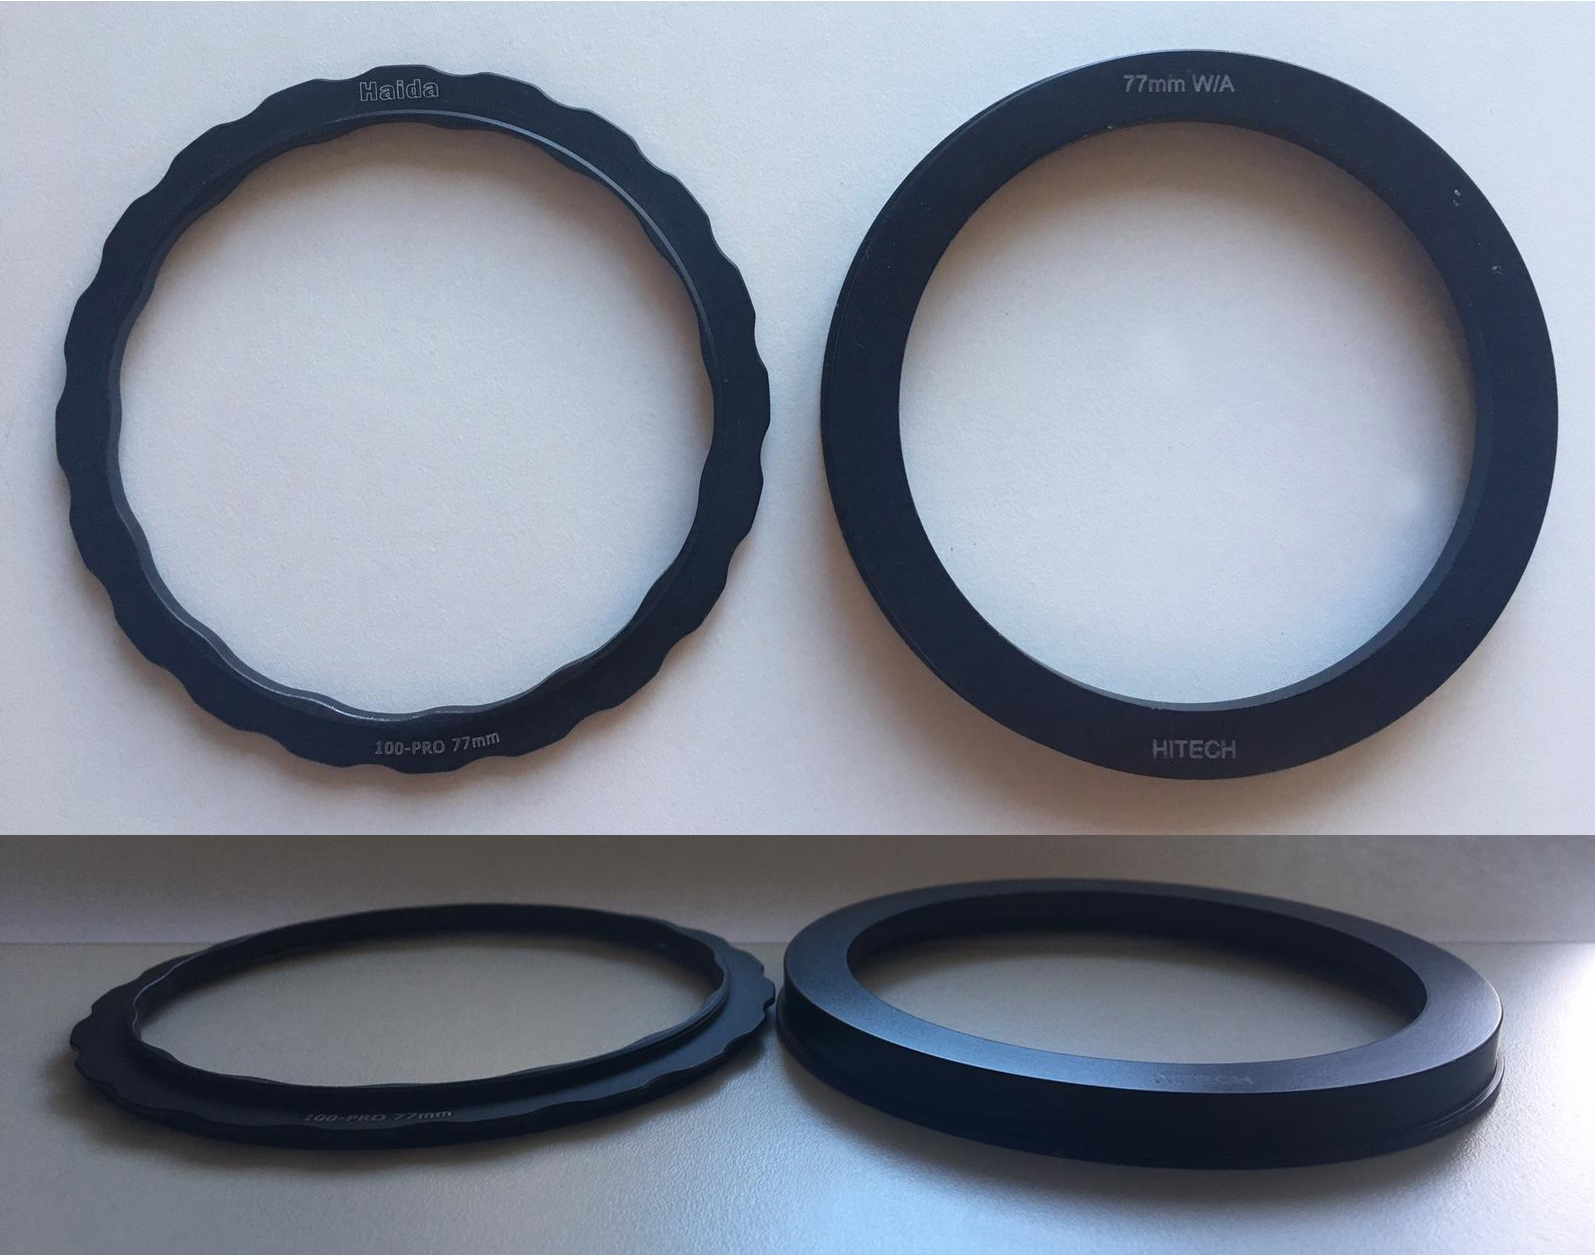 Size comparison between the Lens adapter rings. The Haida Pro lens adapter (Left) is much thinner and lighter than the Formatt Hitech one (Right).